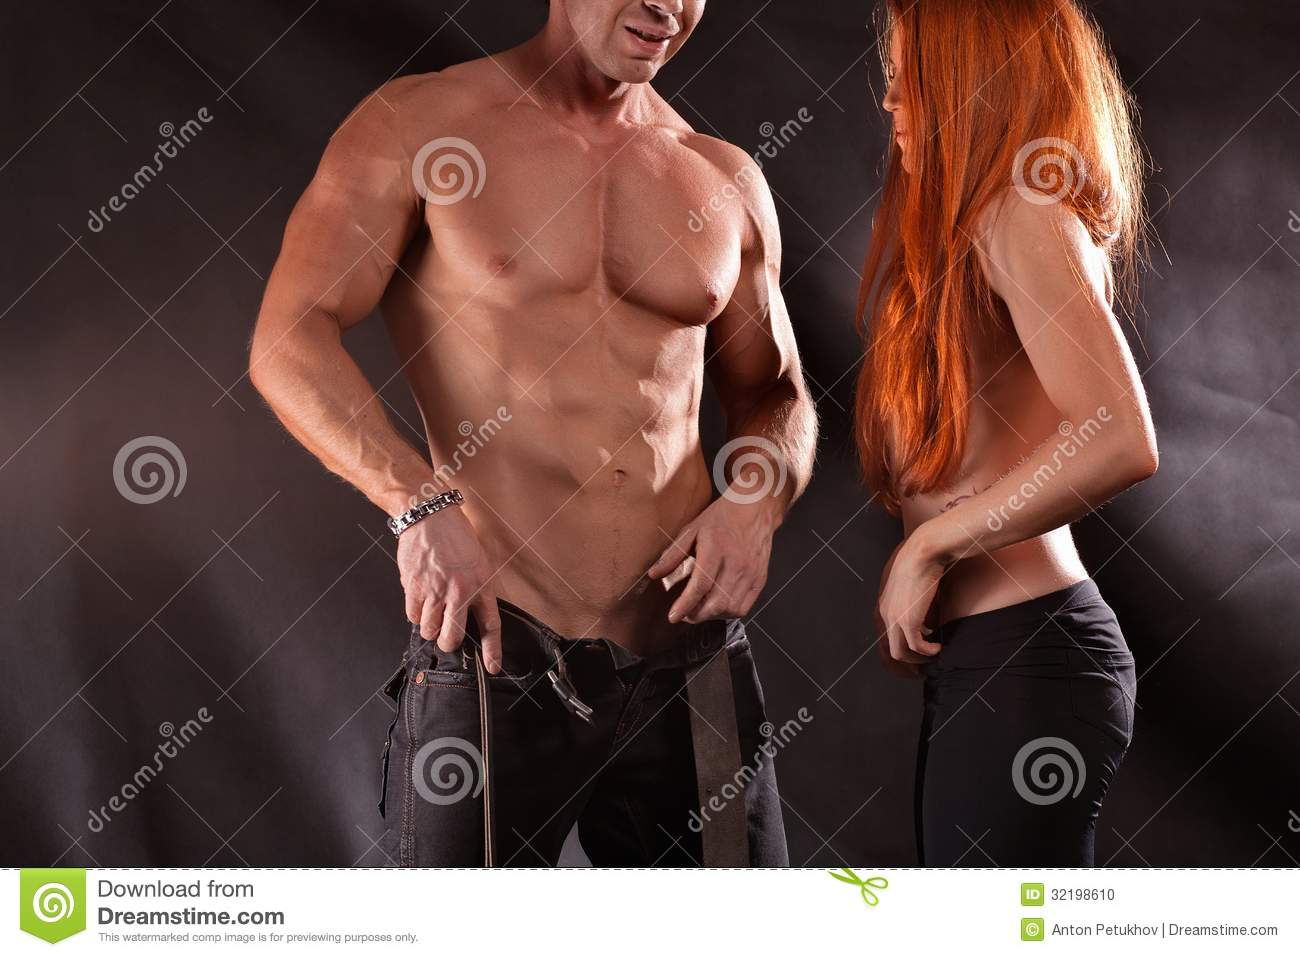 Sexy images of male and female